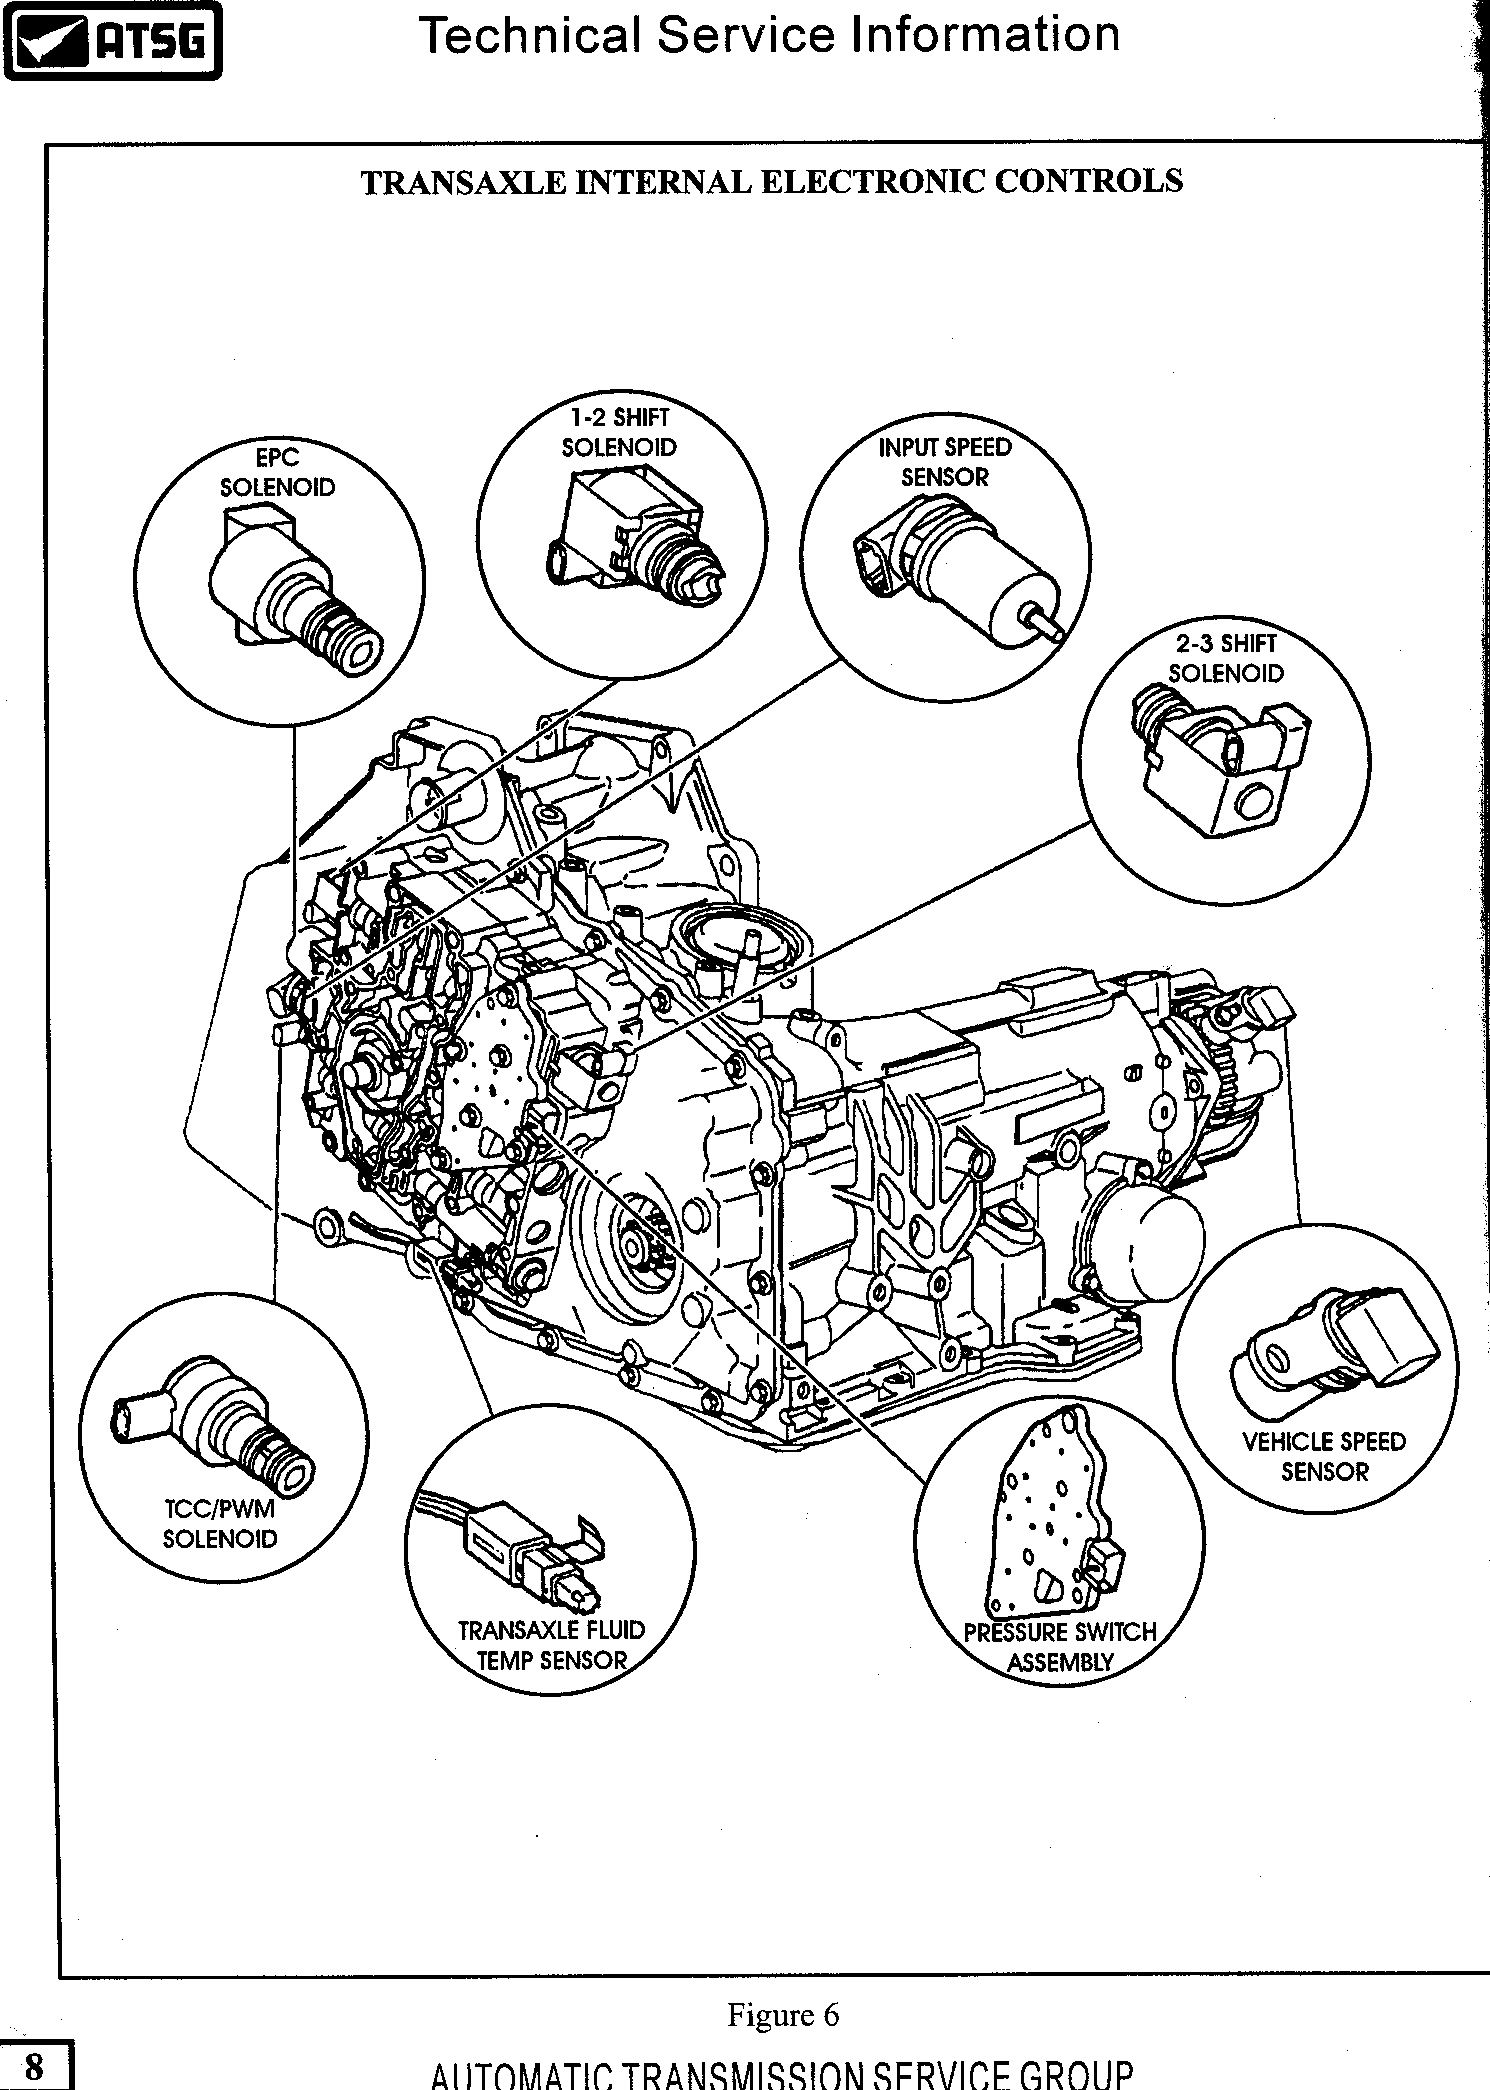 hight resolution of gm 4t65e diagram wiring diagram schematics 1999 jimmy gm transaxle diagram 4t65e hd diagram simple wiring